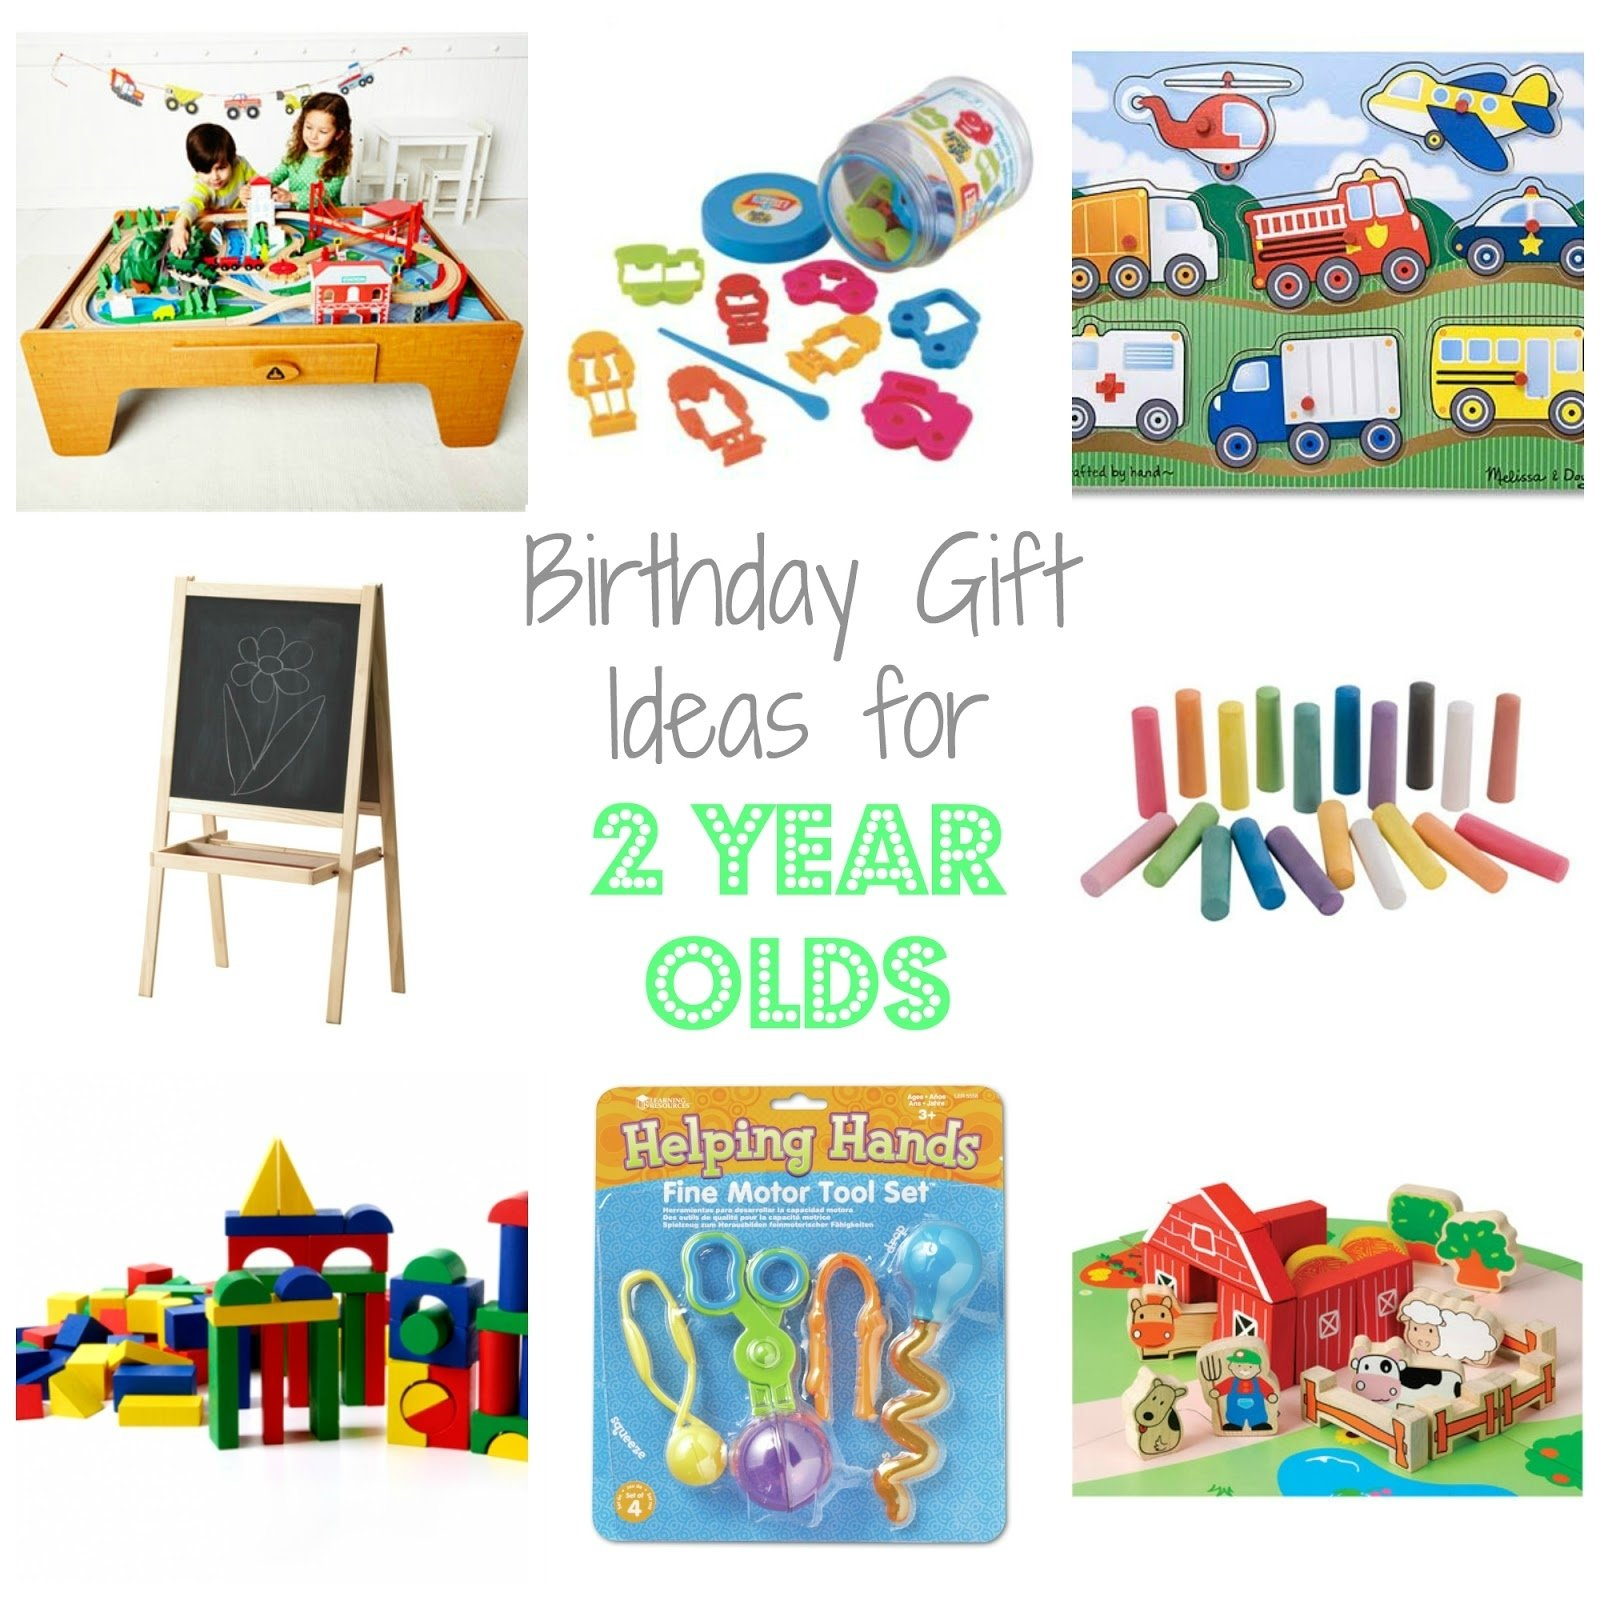 10 Famous 2 Year Old Birthday Gift Ideas